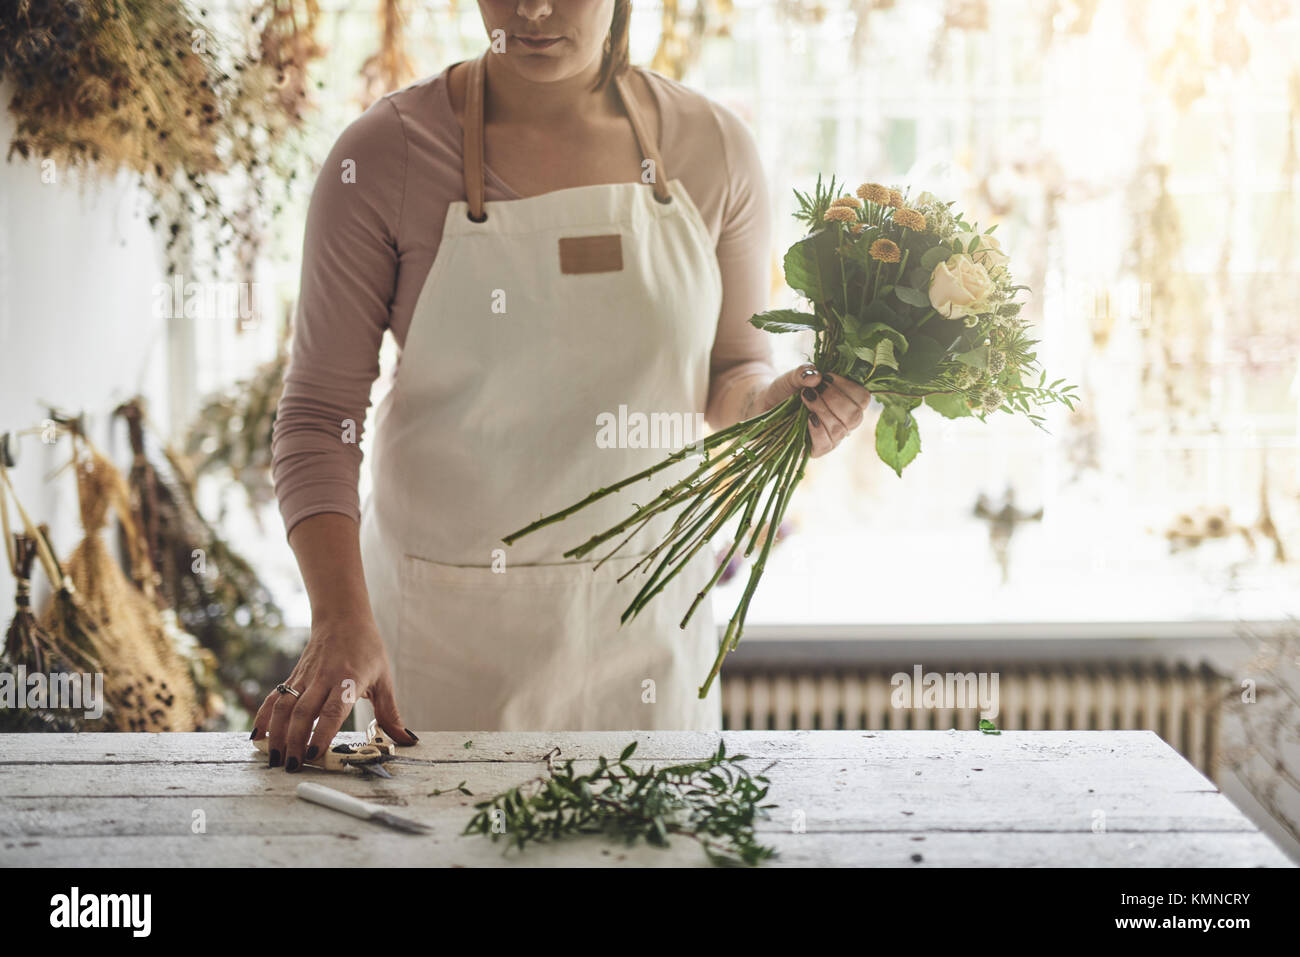 Young woman working at a table in her flower shop trimming the stems of flowers while making a bouquet - Stock Image